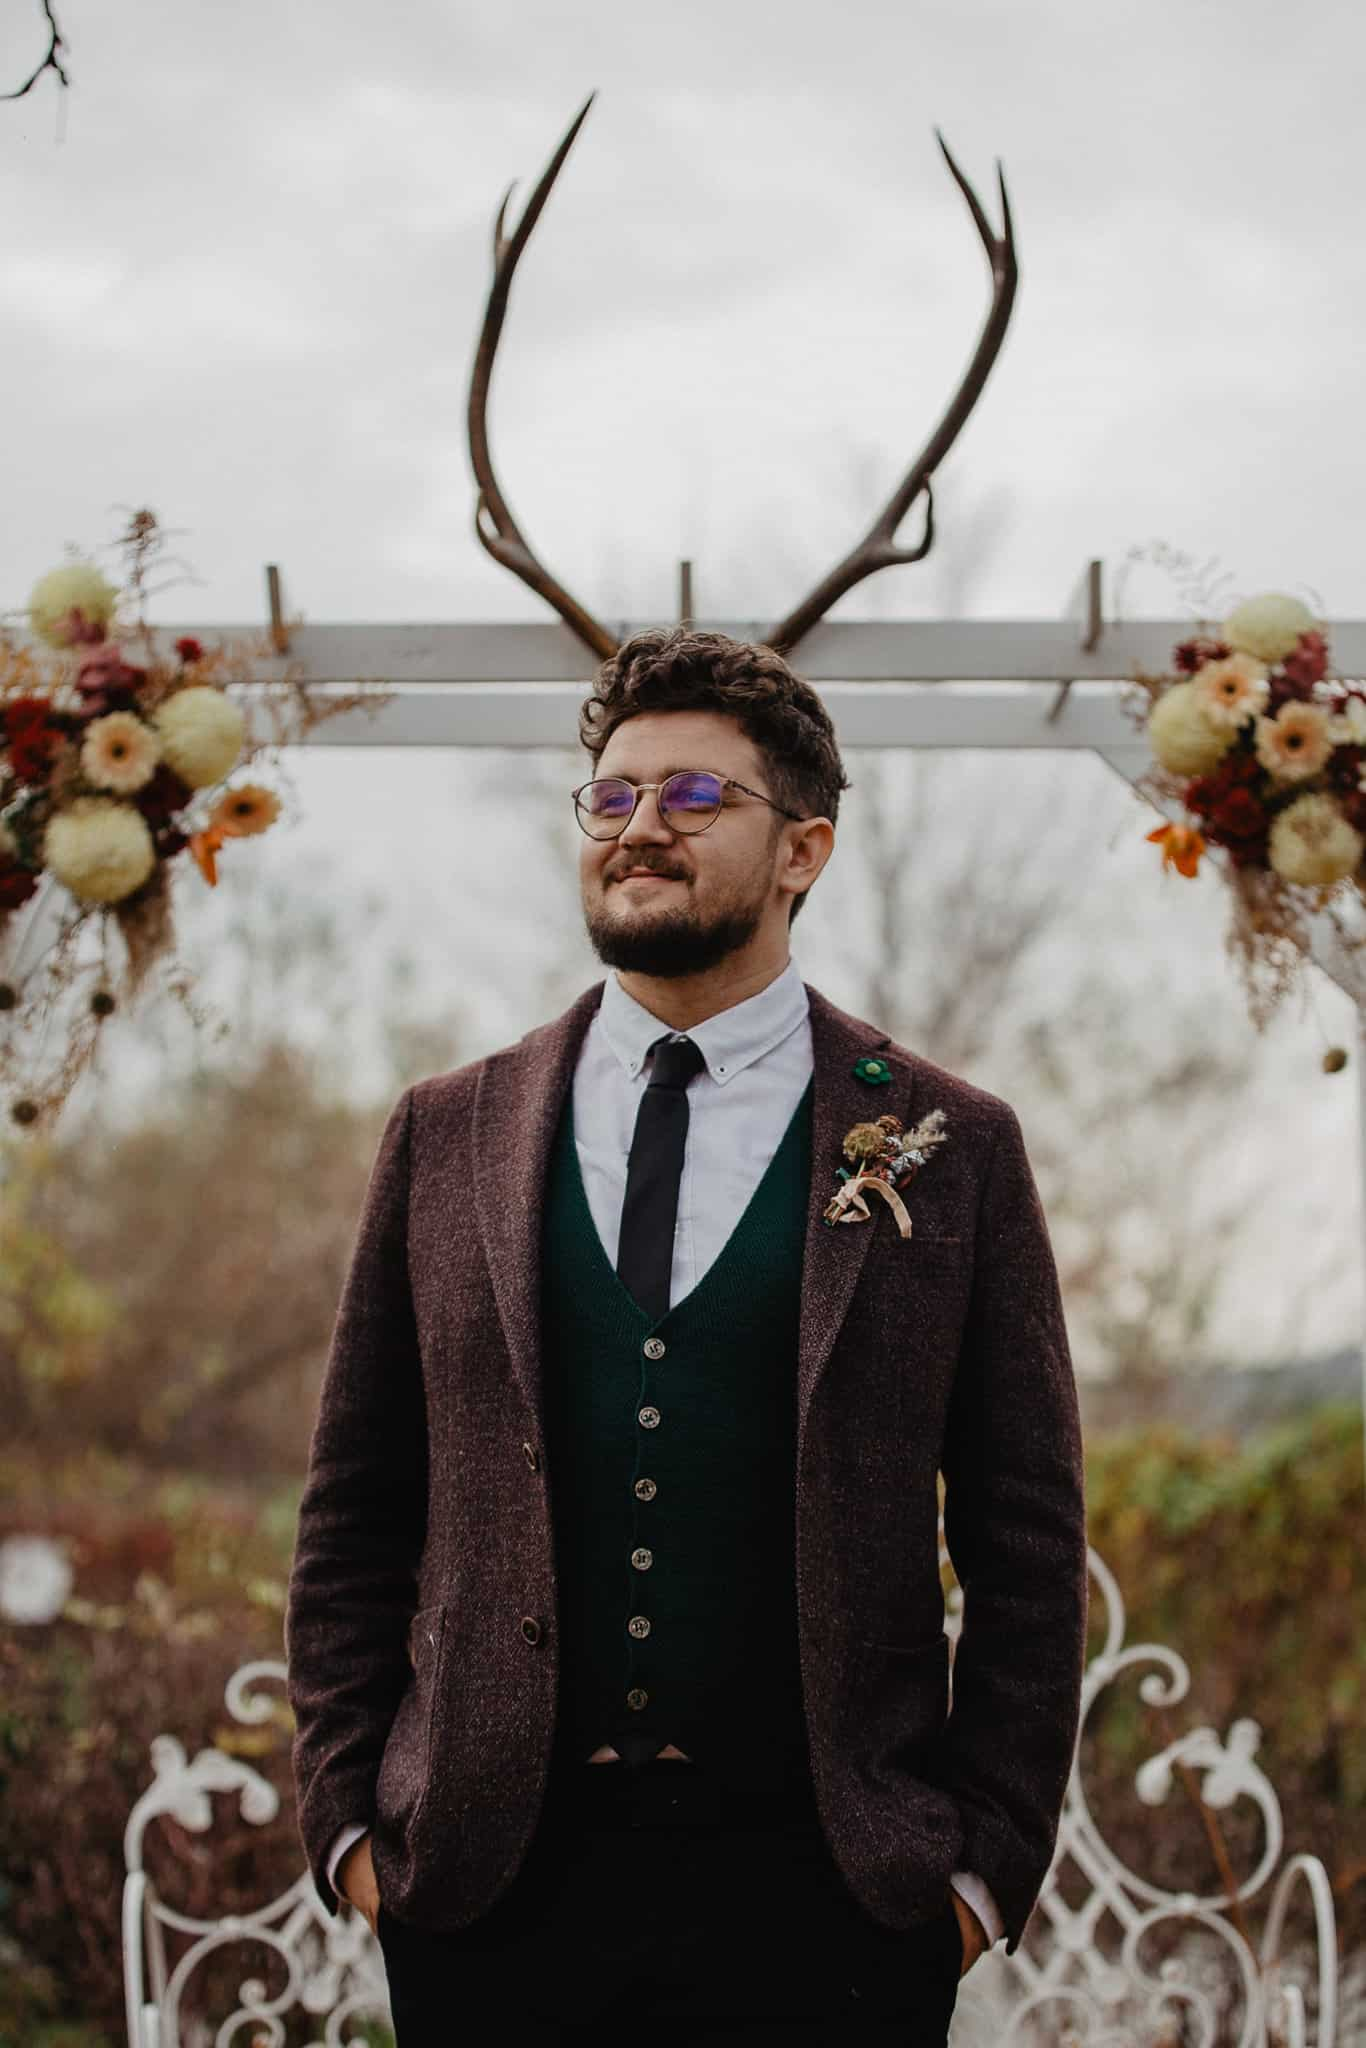 Groom Portraits You Will Keep In Mind Forever!